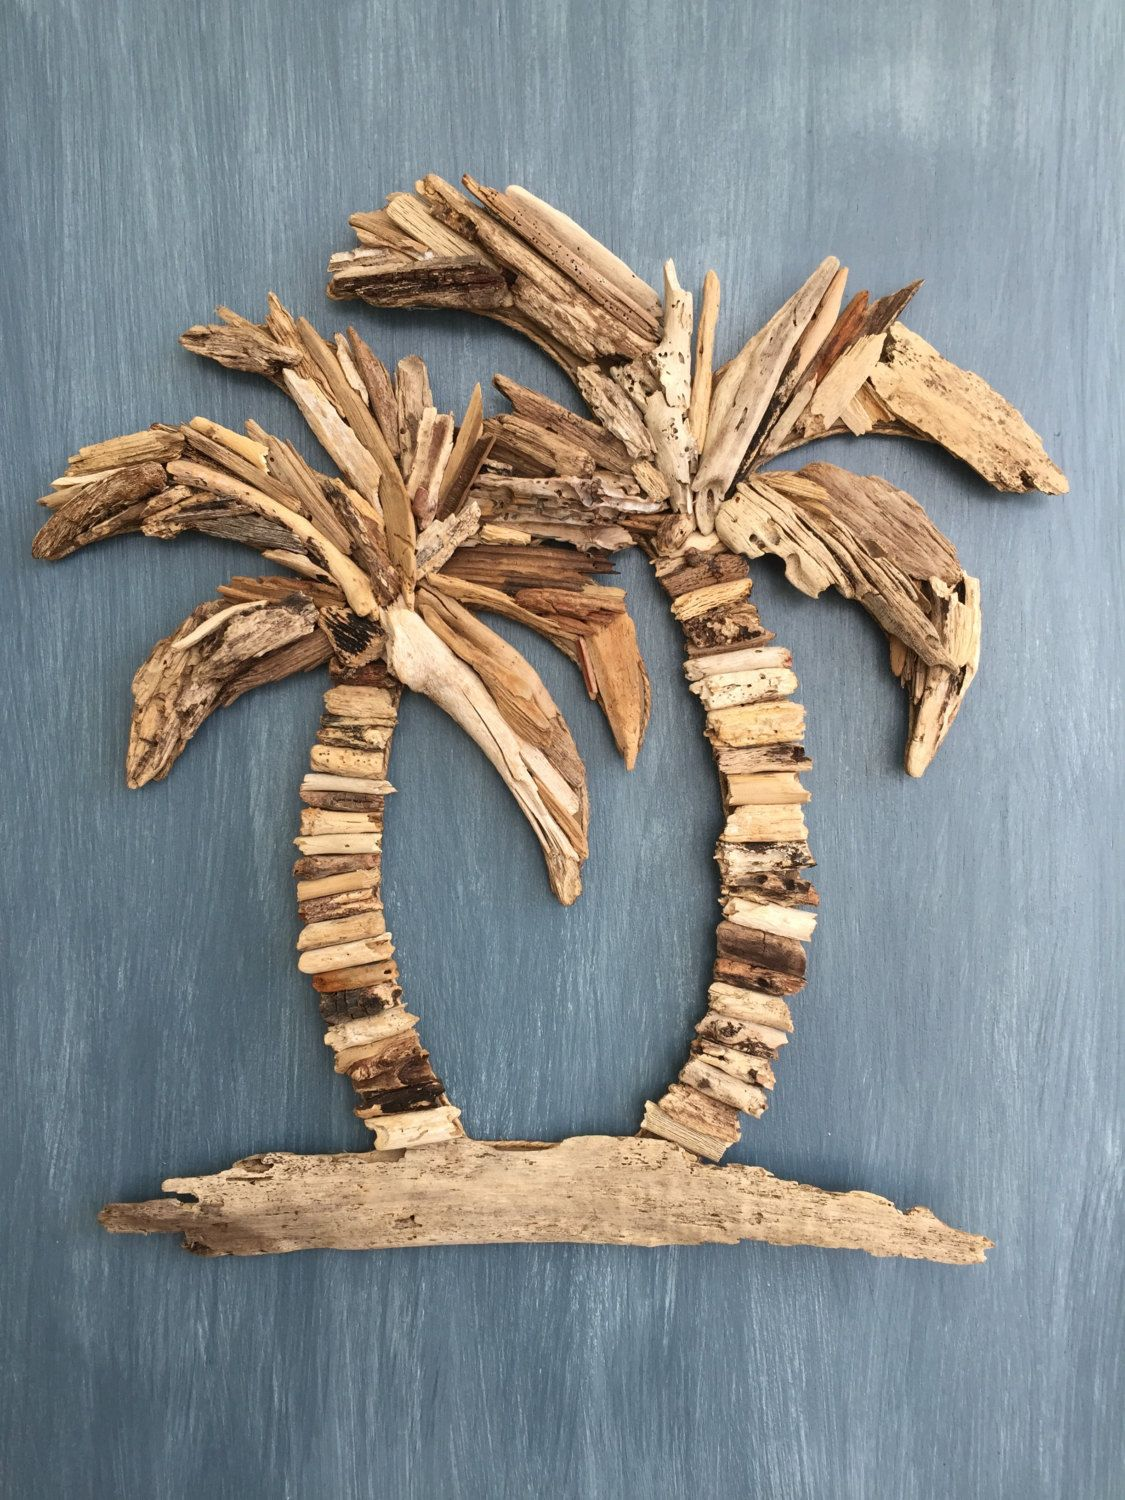 Driftwood Palm Trees Coastal Tropical Wall Decor Made To Order 65 00 Usd By Beachwooddreams